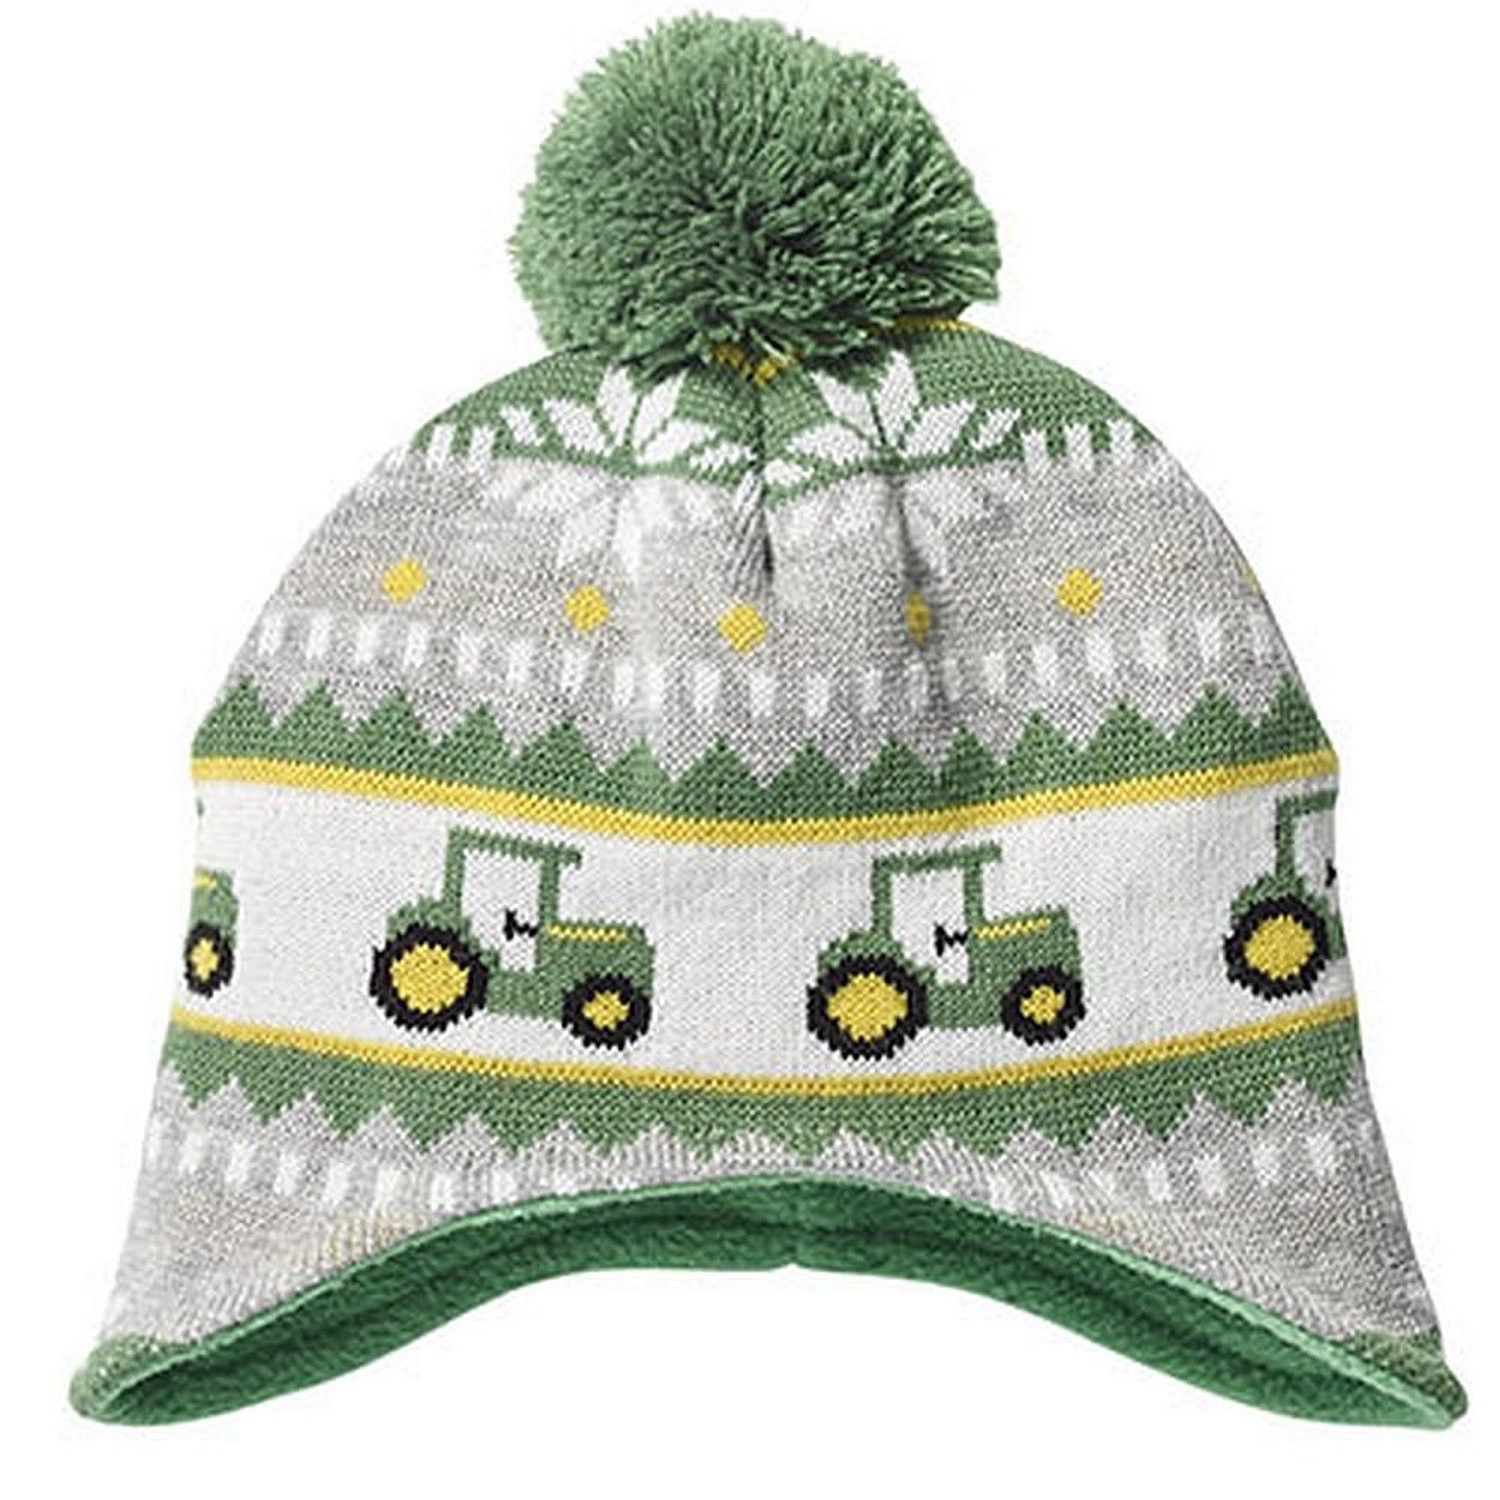 John Deere Toddler Boys Knit Hat With Tractors And Pom Dallas Mom N Bab Blouse Layla White Size 5t